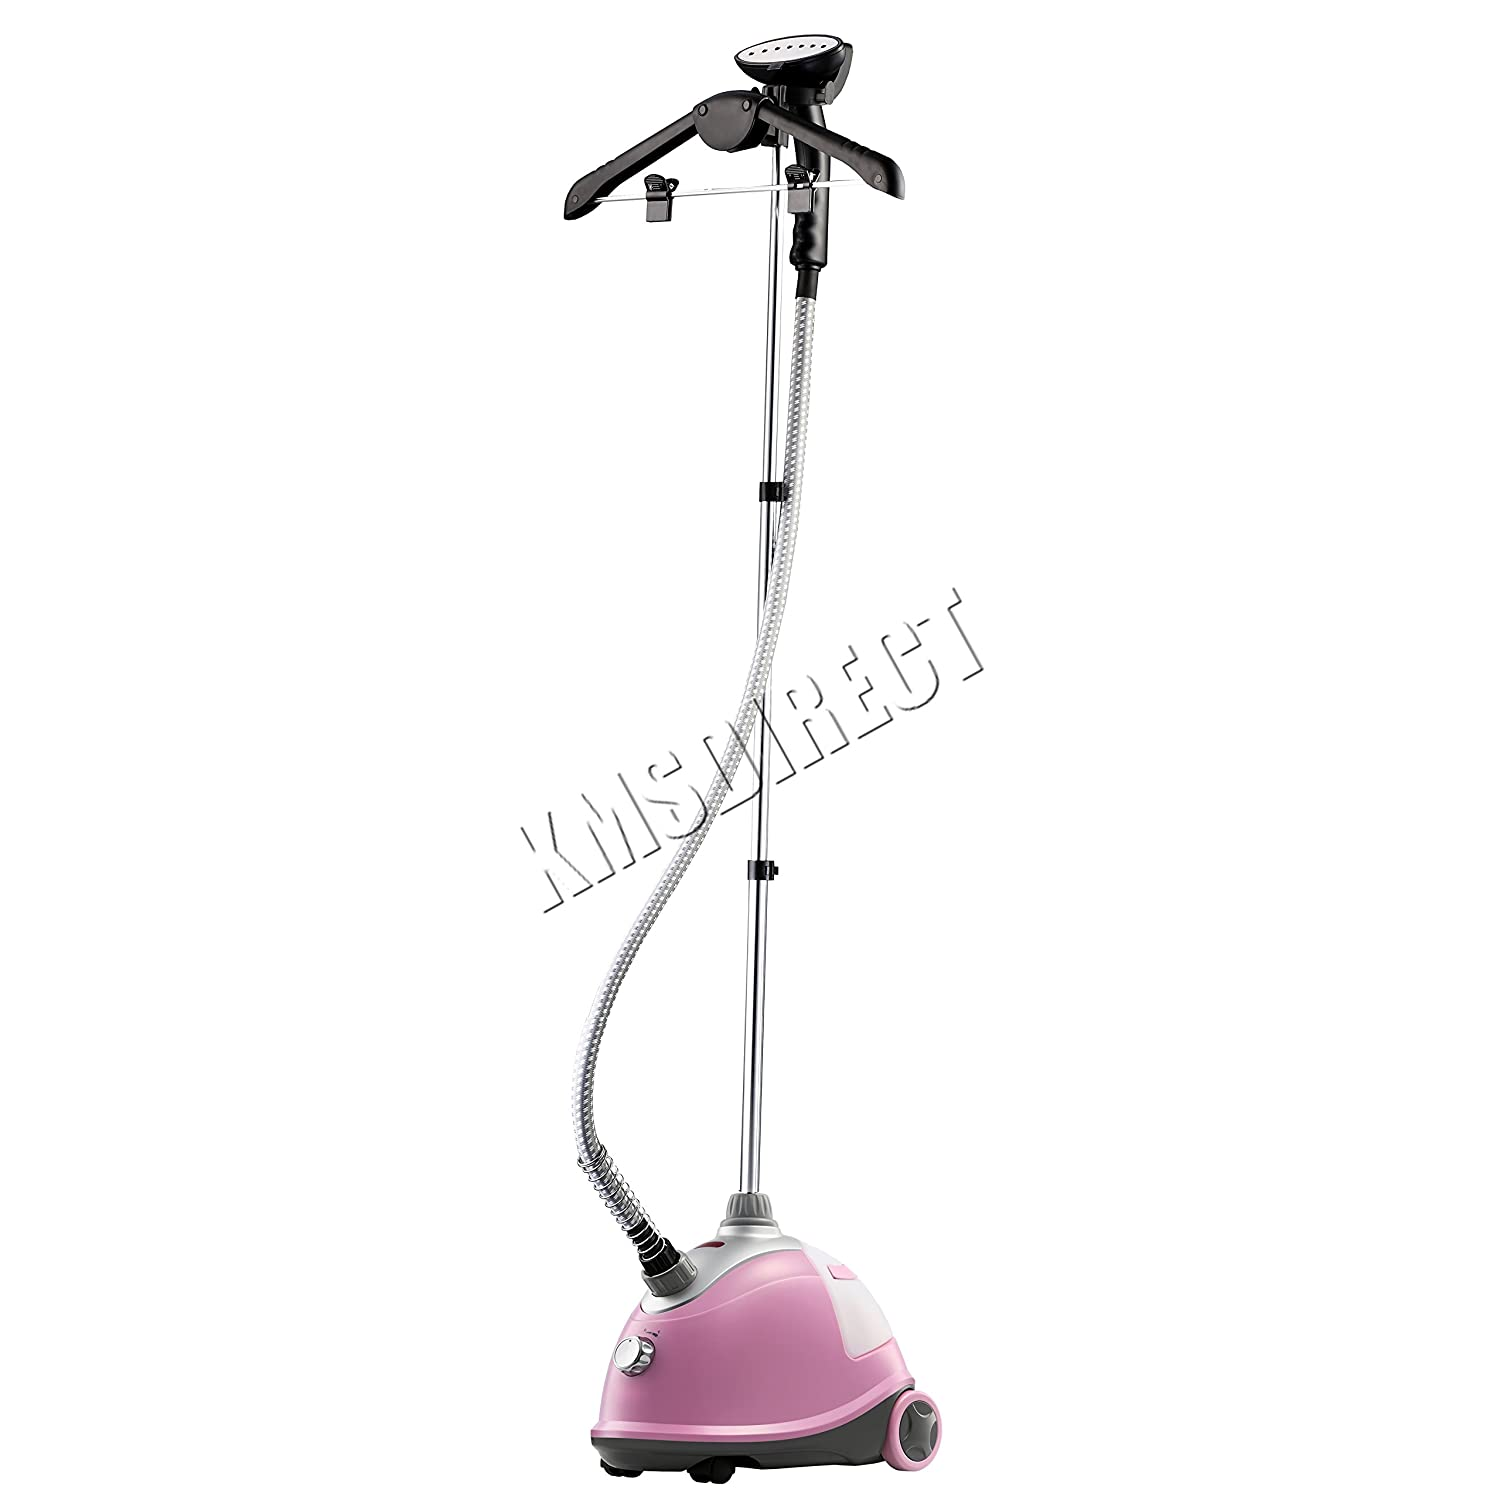 FoxHunter Professional Portable Garment Steamer 1800W Fabric Brush Curtain Silk Clothes Iron Heat Pink KMS